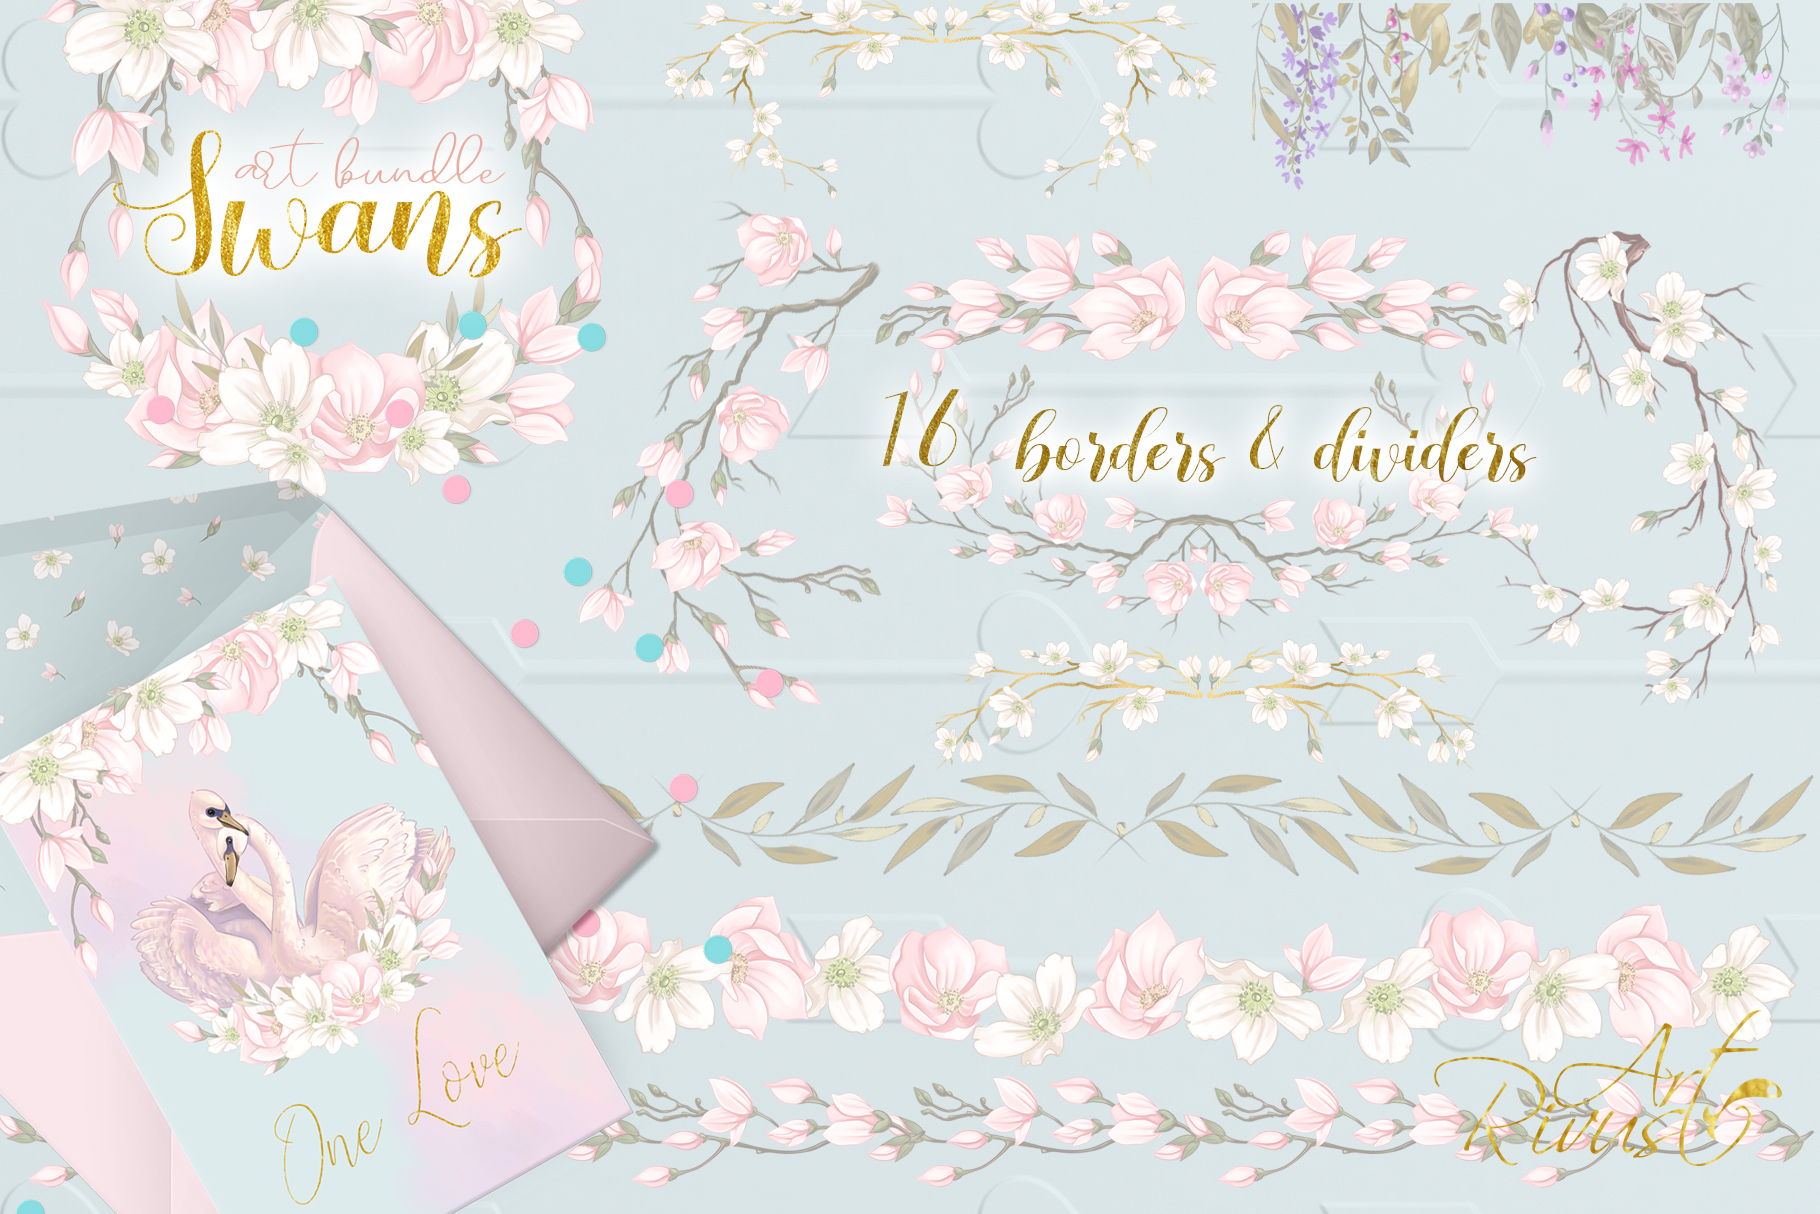 Swans clipart bundle. Wedding and baby shower graphic pack. example image 6